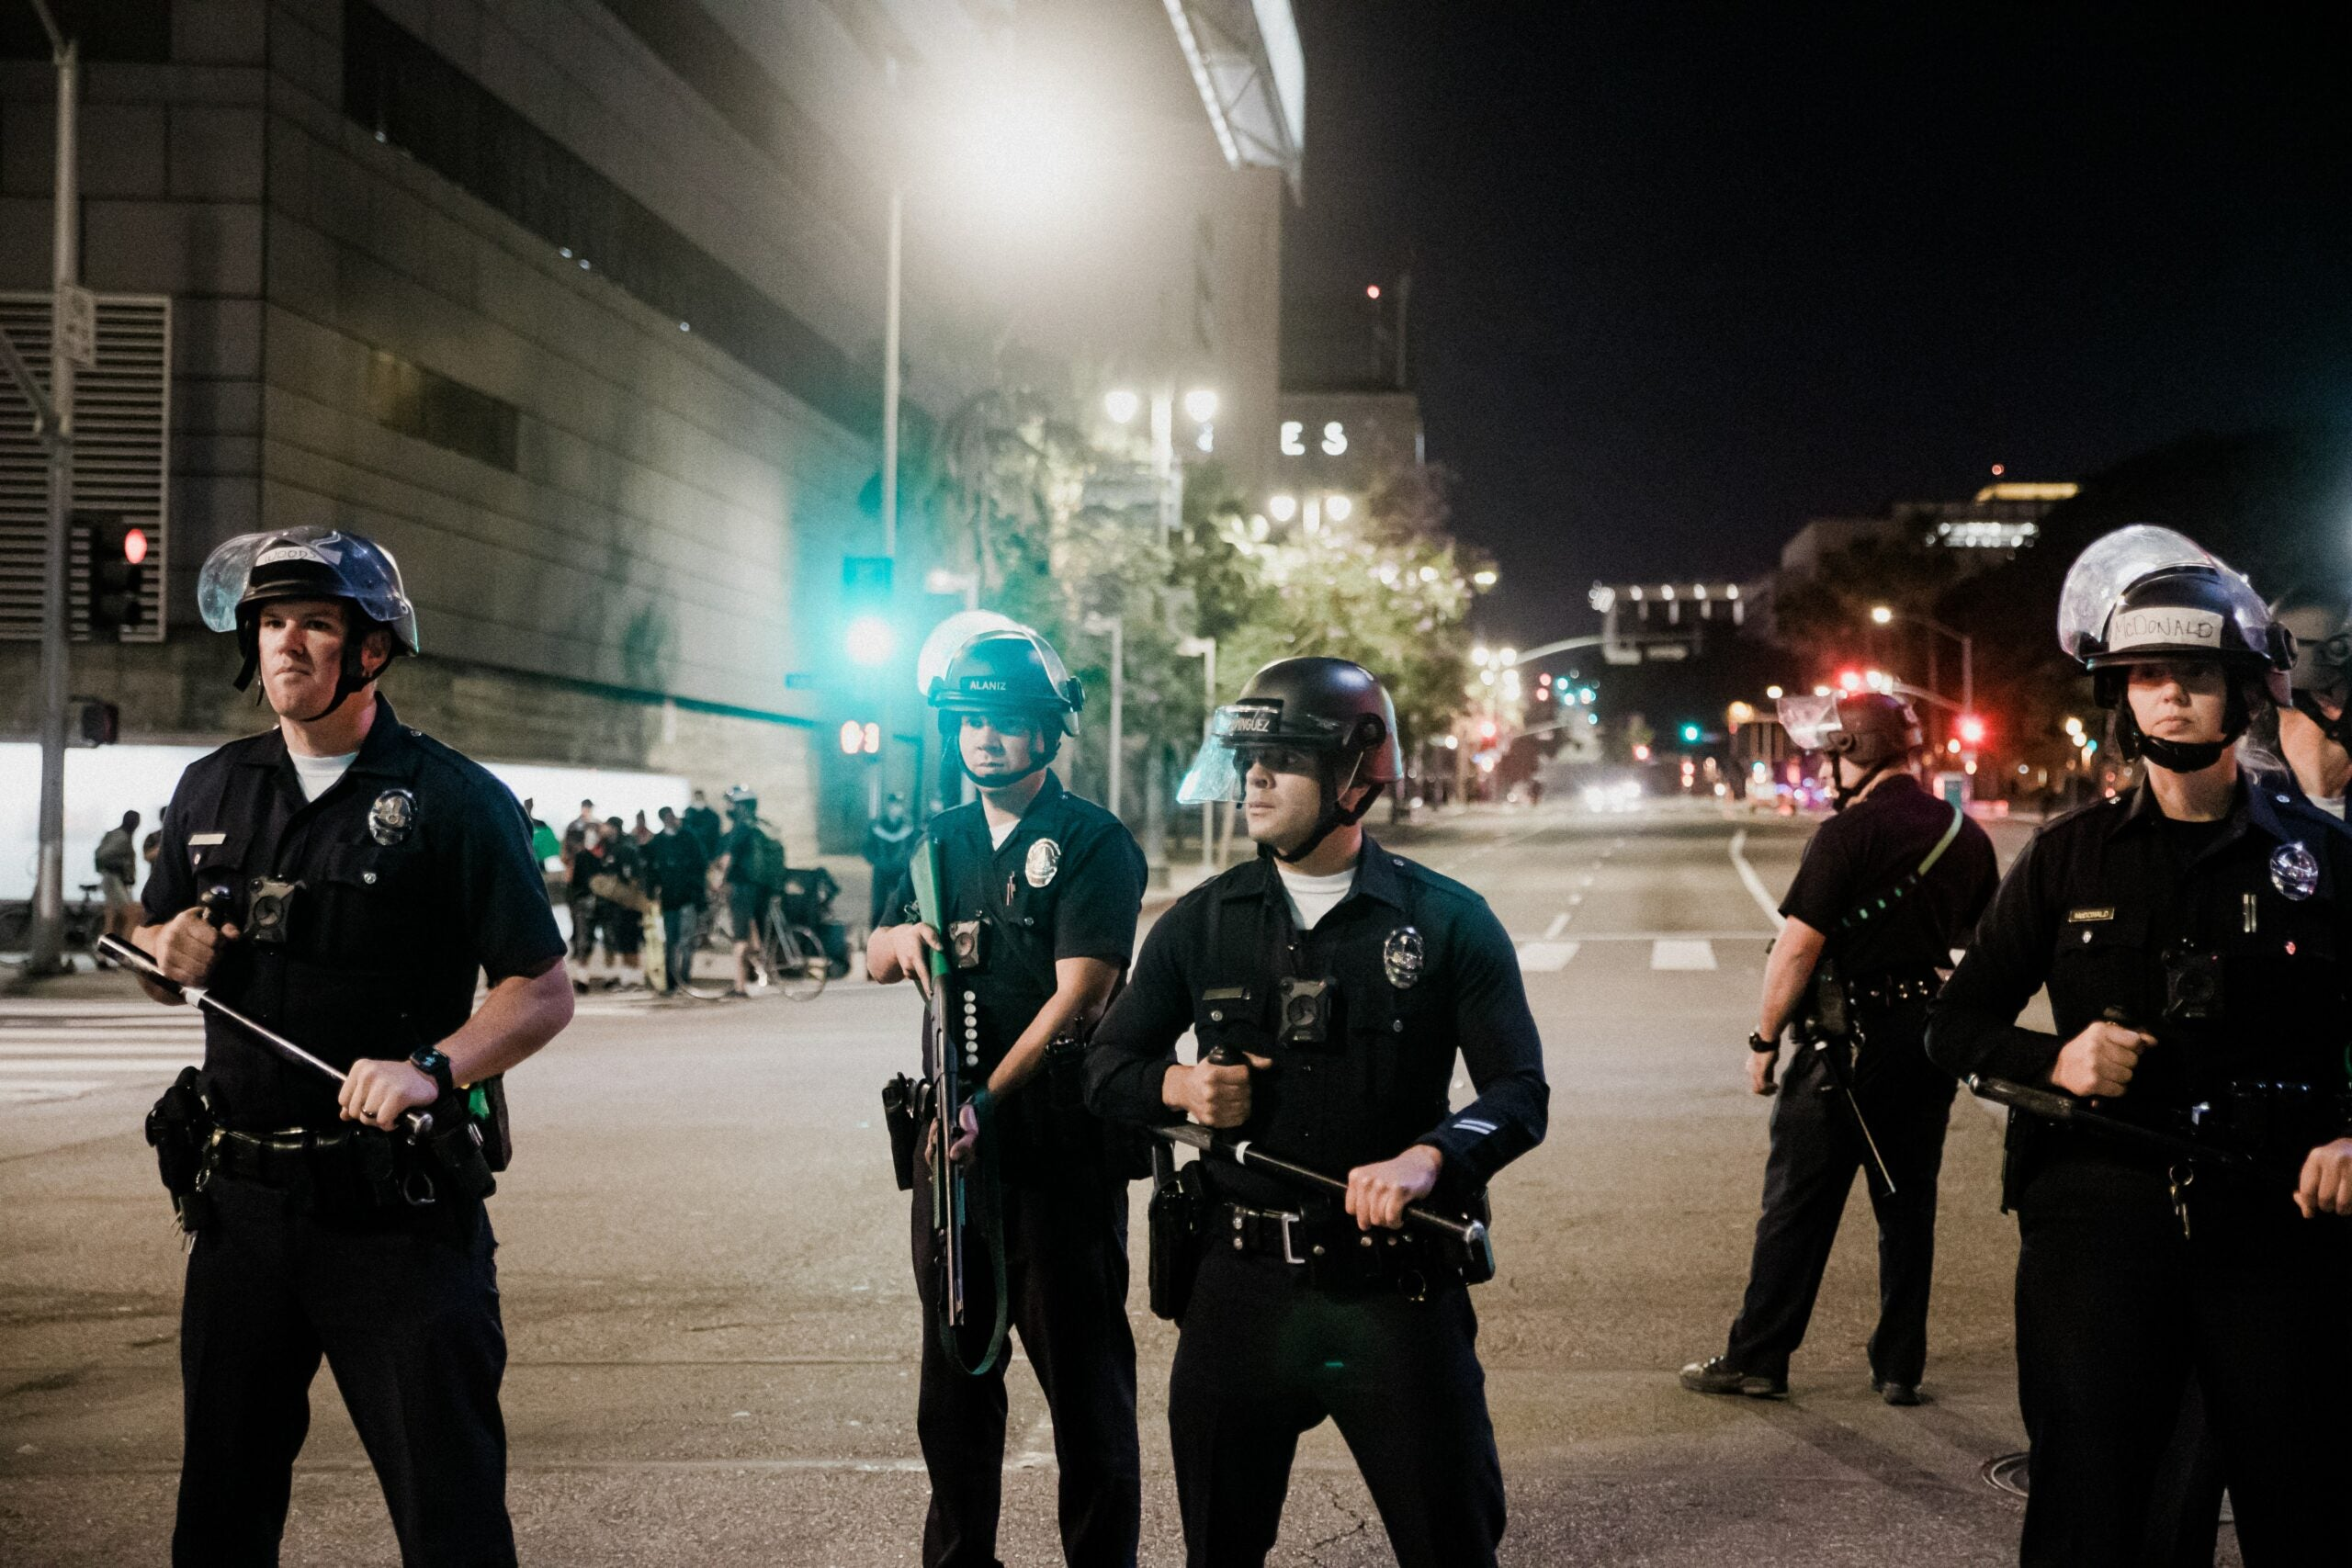 several police officers standing in a road holding weapons